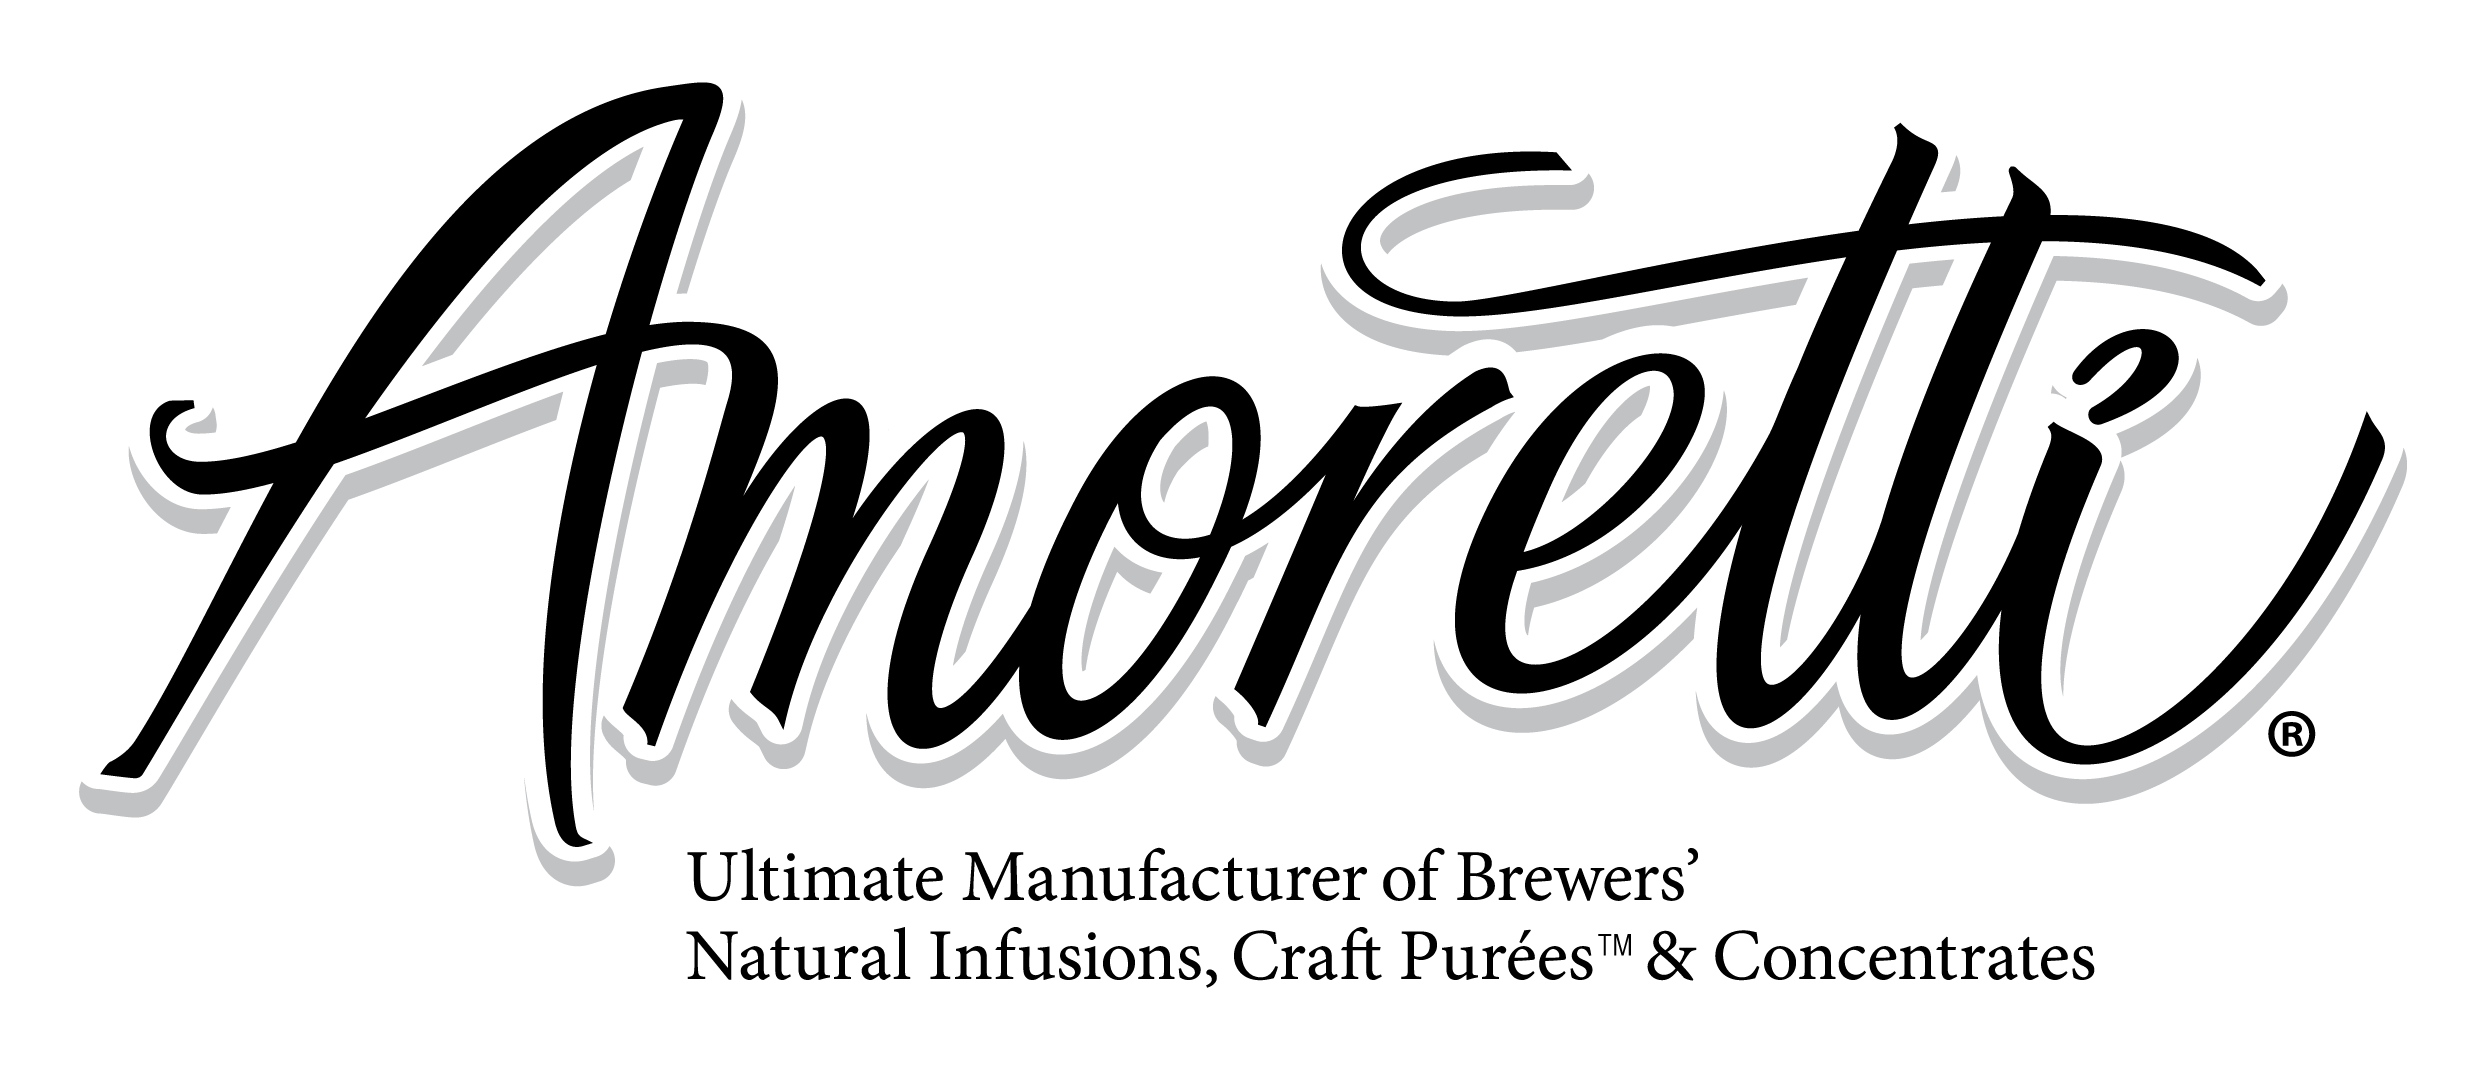 Amoretti-retail-logo-with-tag-brewers-01